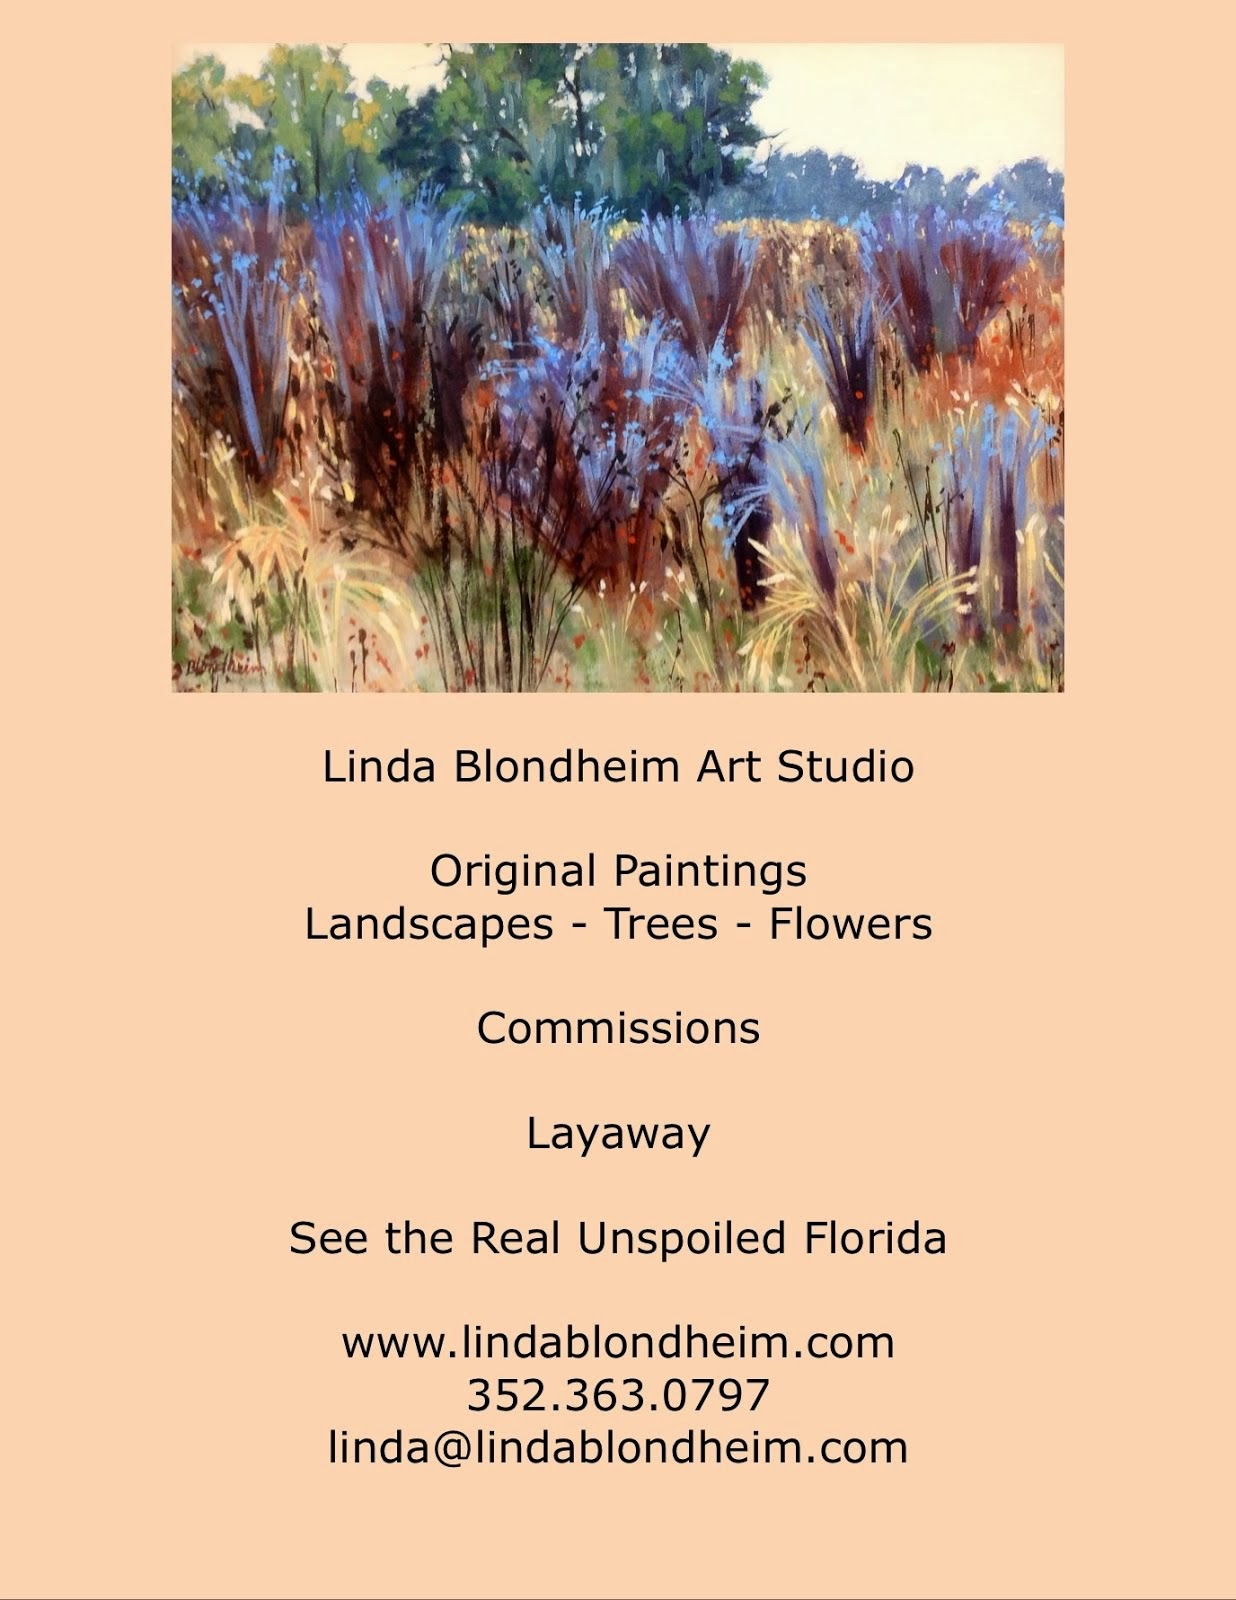 Linda Blondheim Art Studio